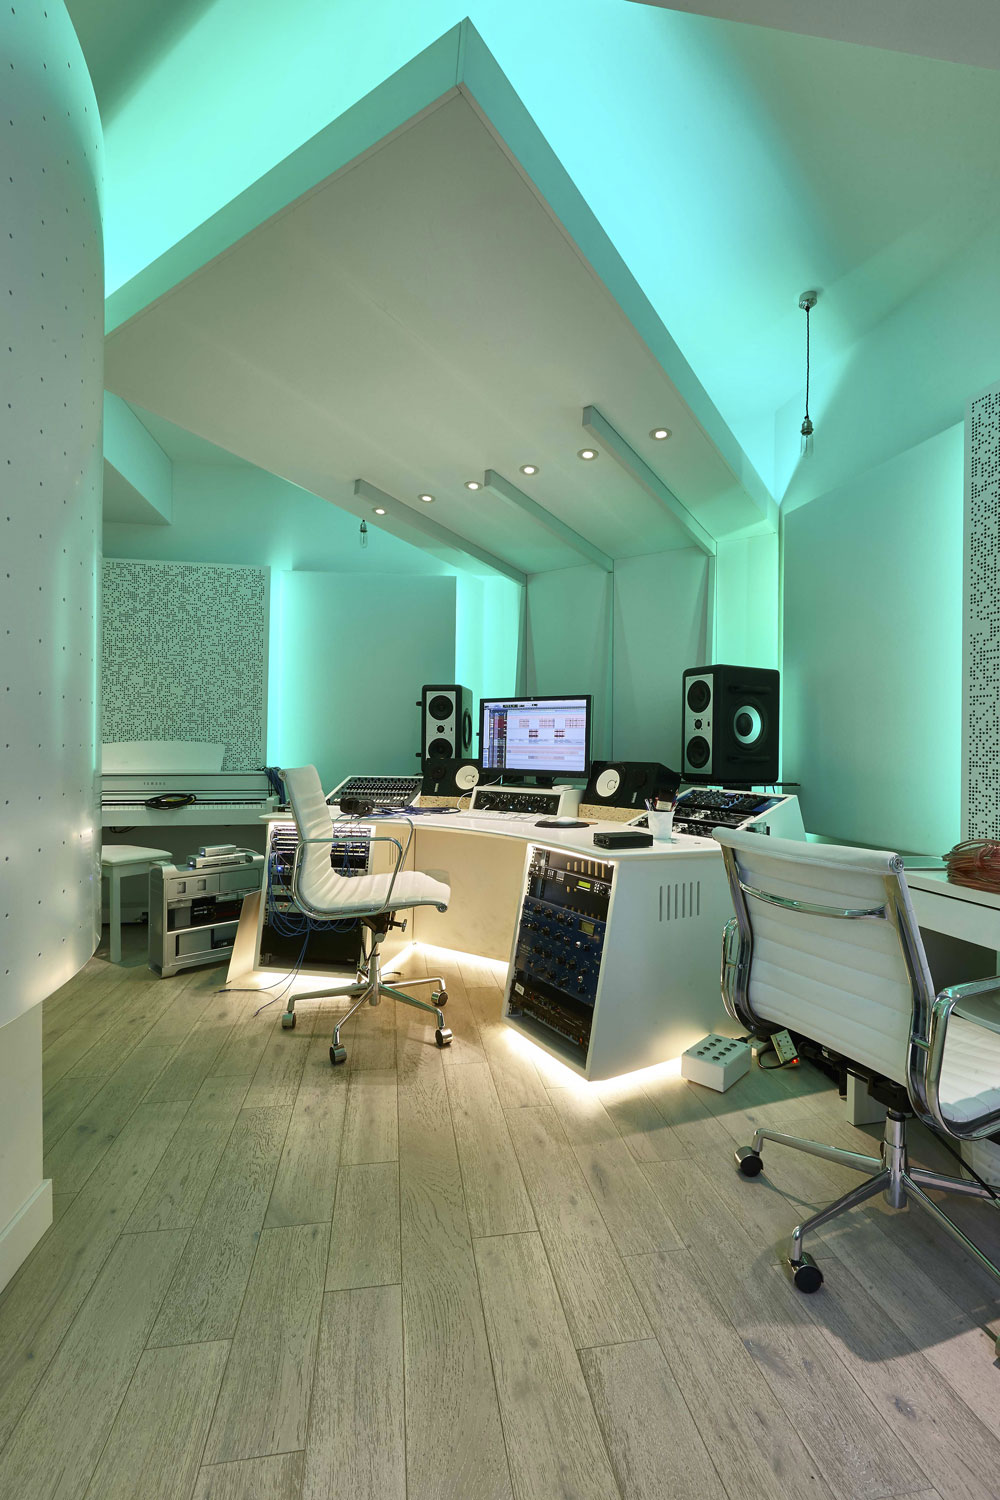 Studio 3, The Church Recording Studio, formerly owned by Dave Stewart of the Eurythmics | Interior Photographer